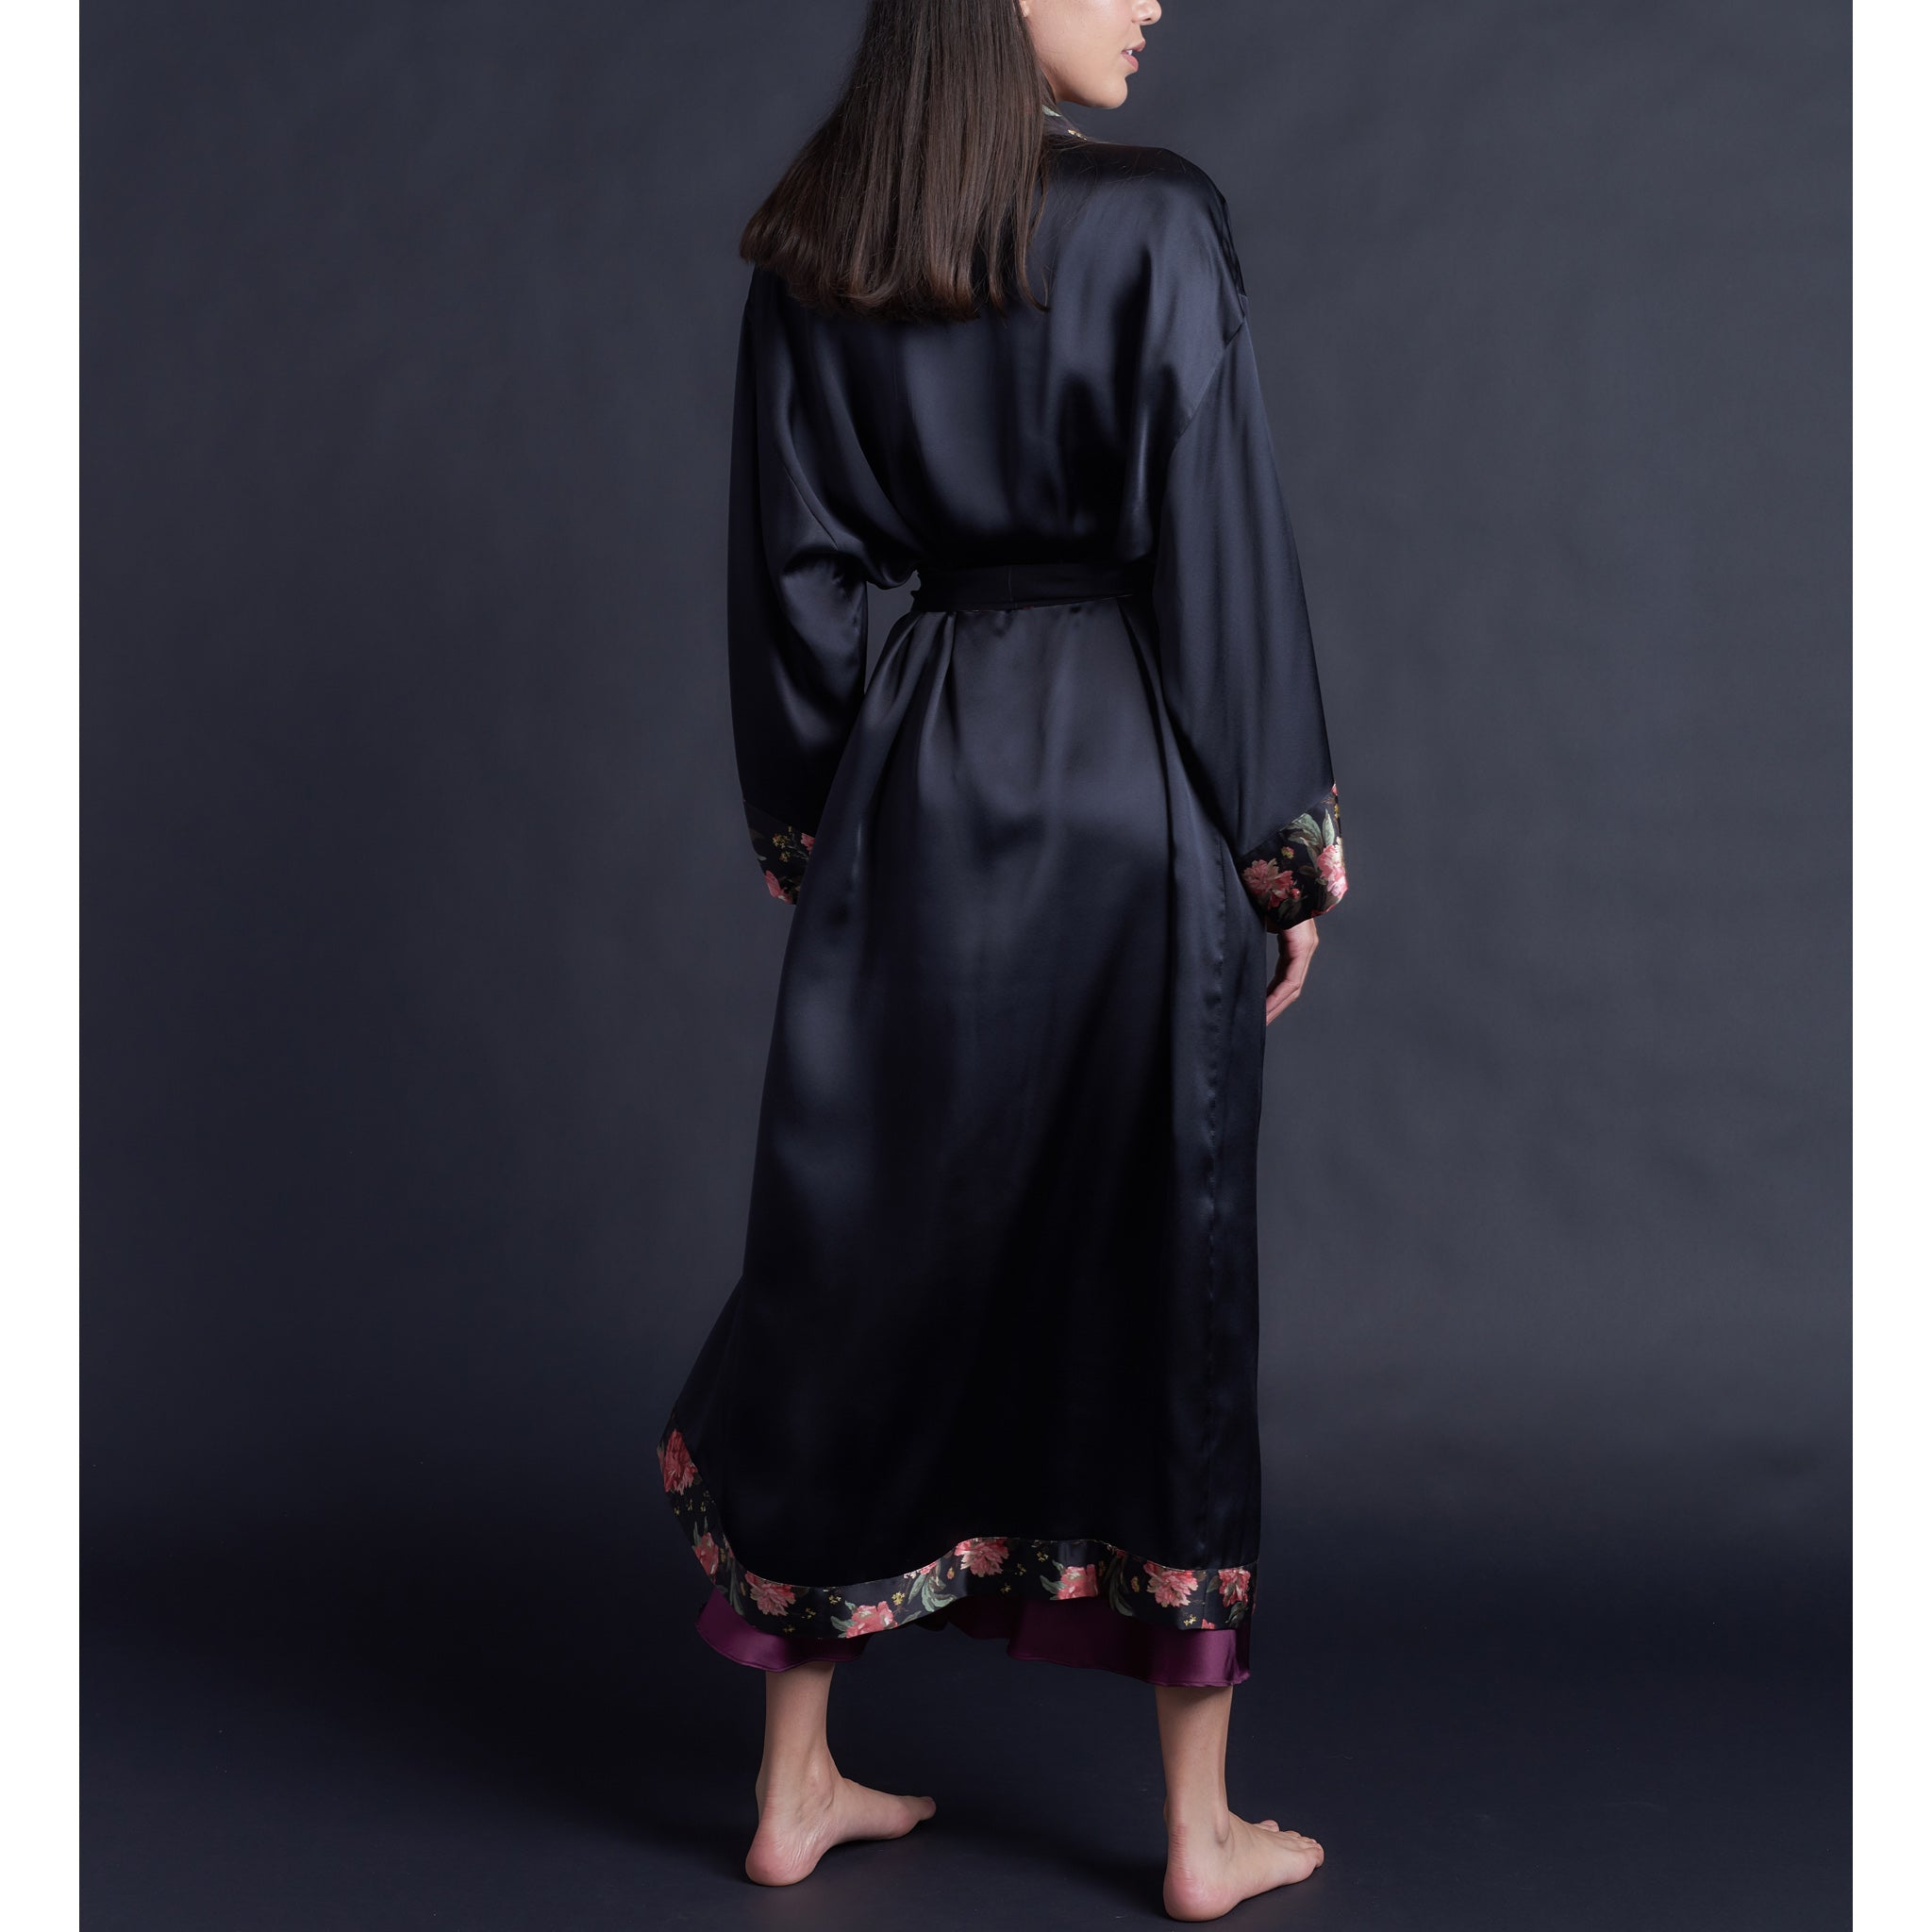 Asteria Kimono Robe in Black Silk Charmeuse with Liberty of London Decadent Blooms Contrast